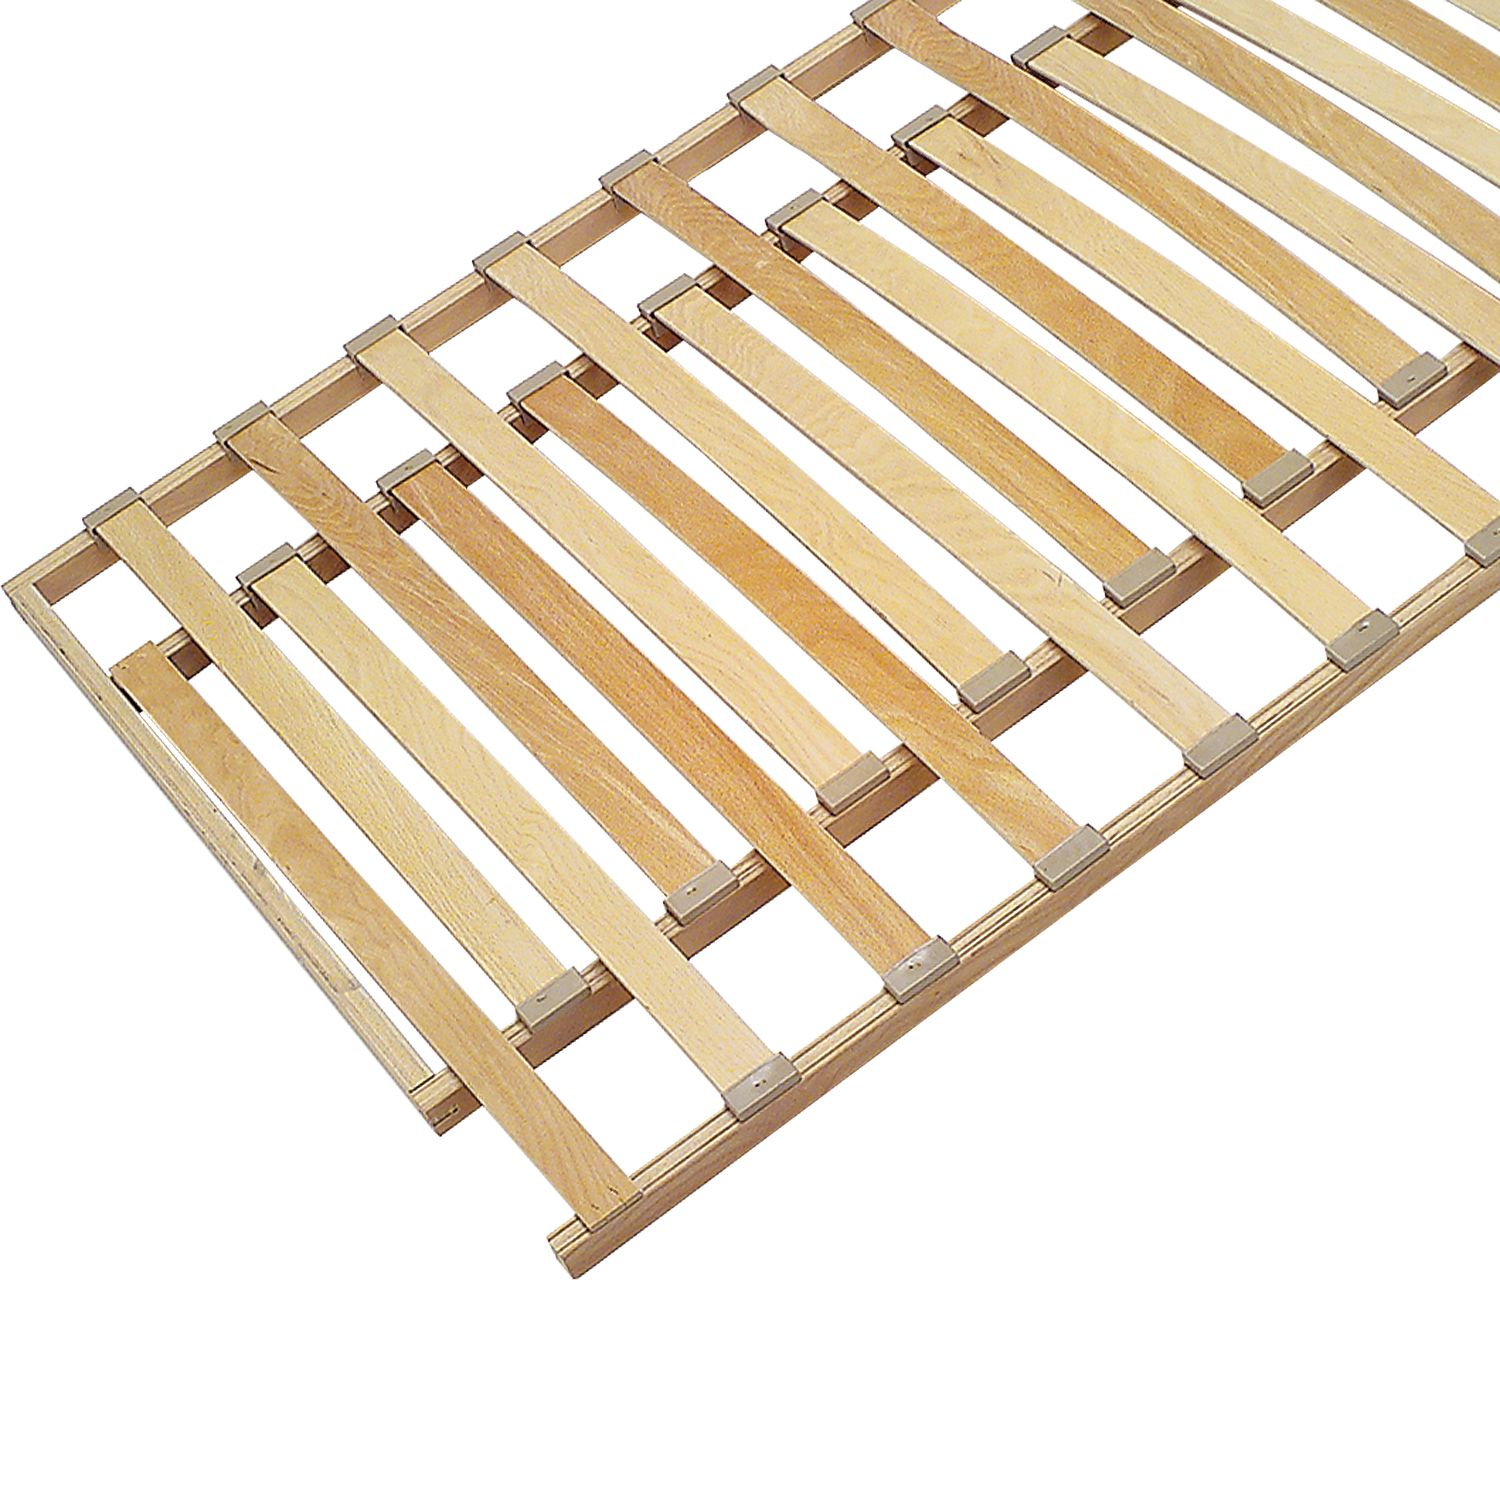 Lattenroste Fiberglas Auflagegitter Für Froli Bettsysteme 2 X 1 M Diy Furniture Bed